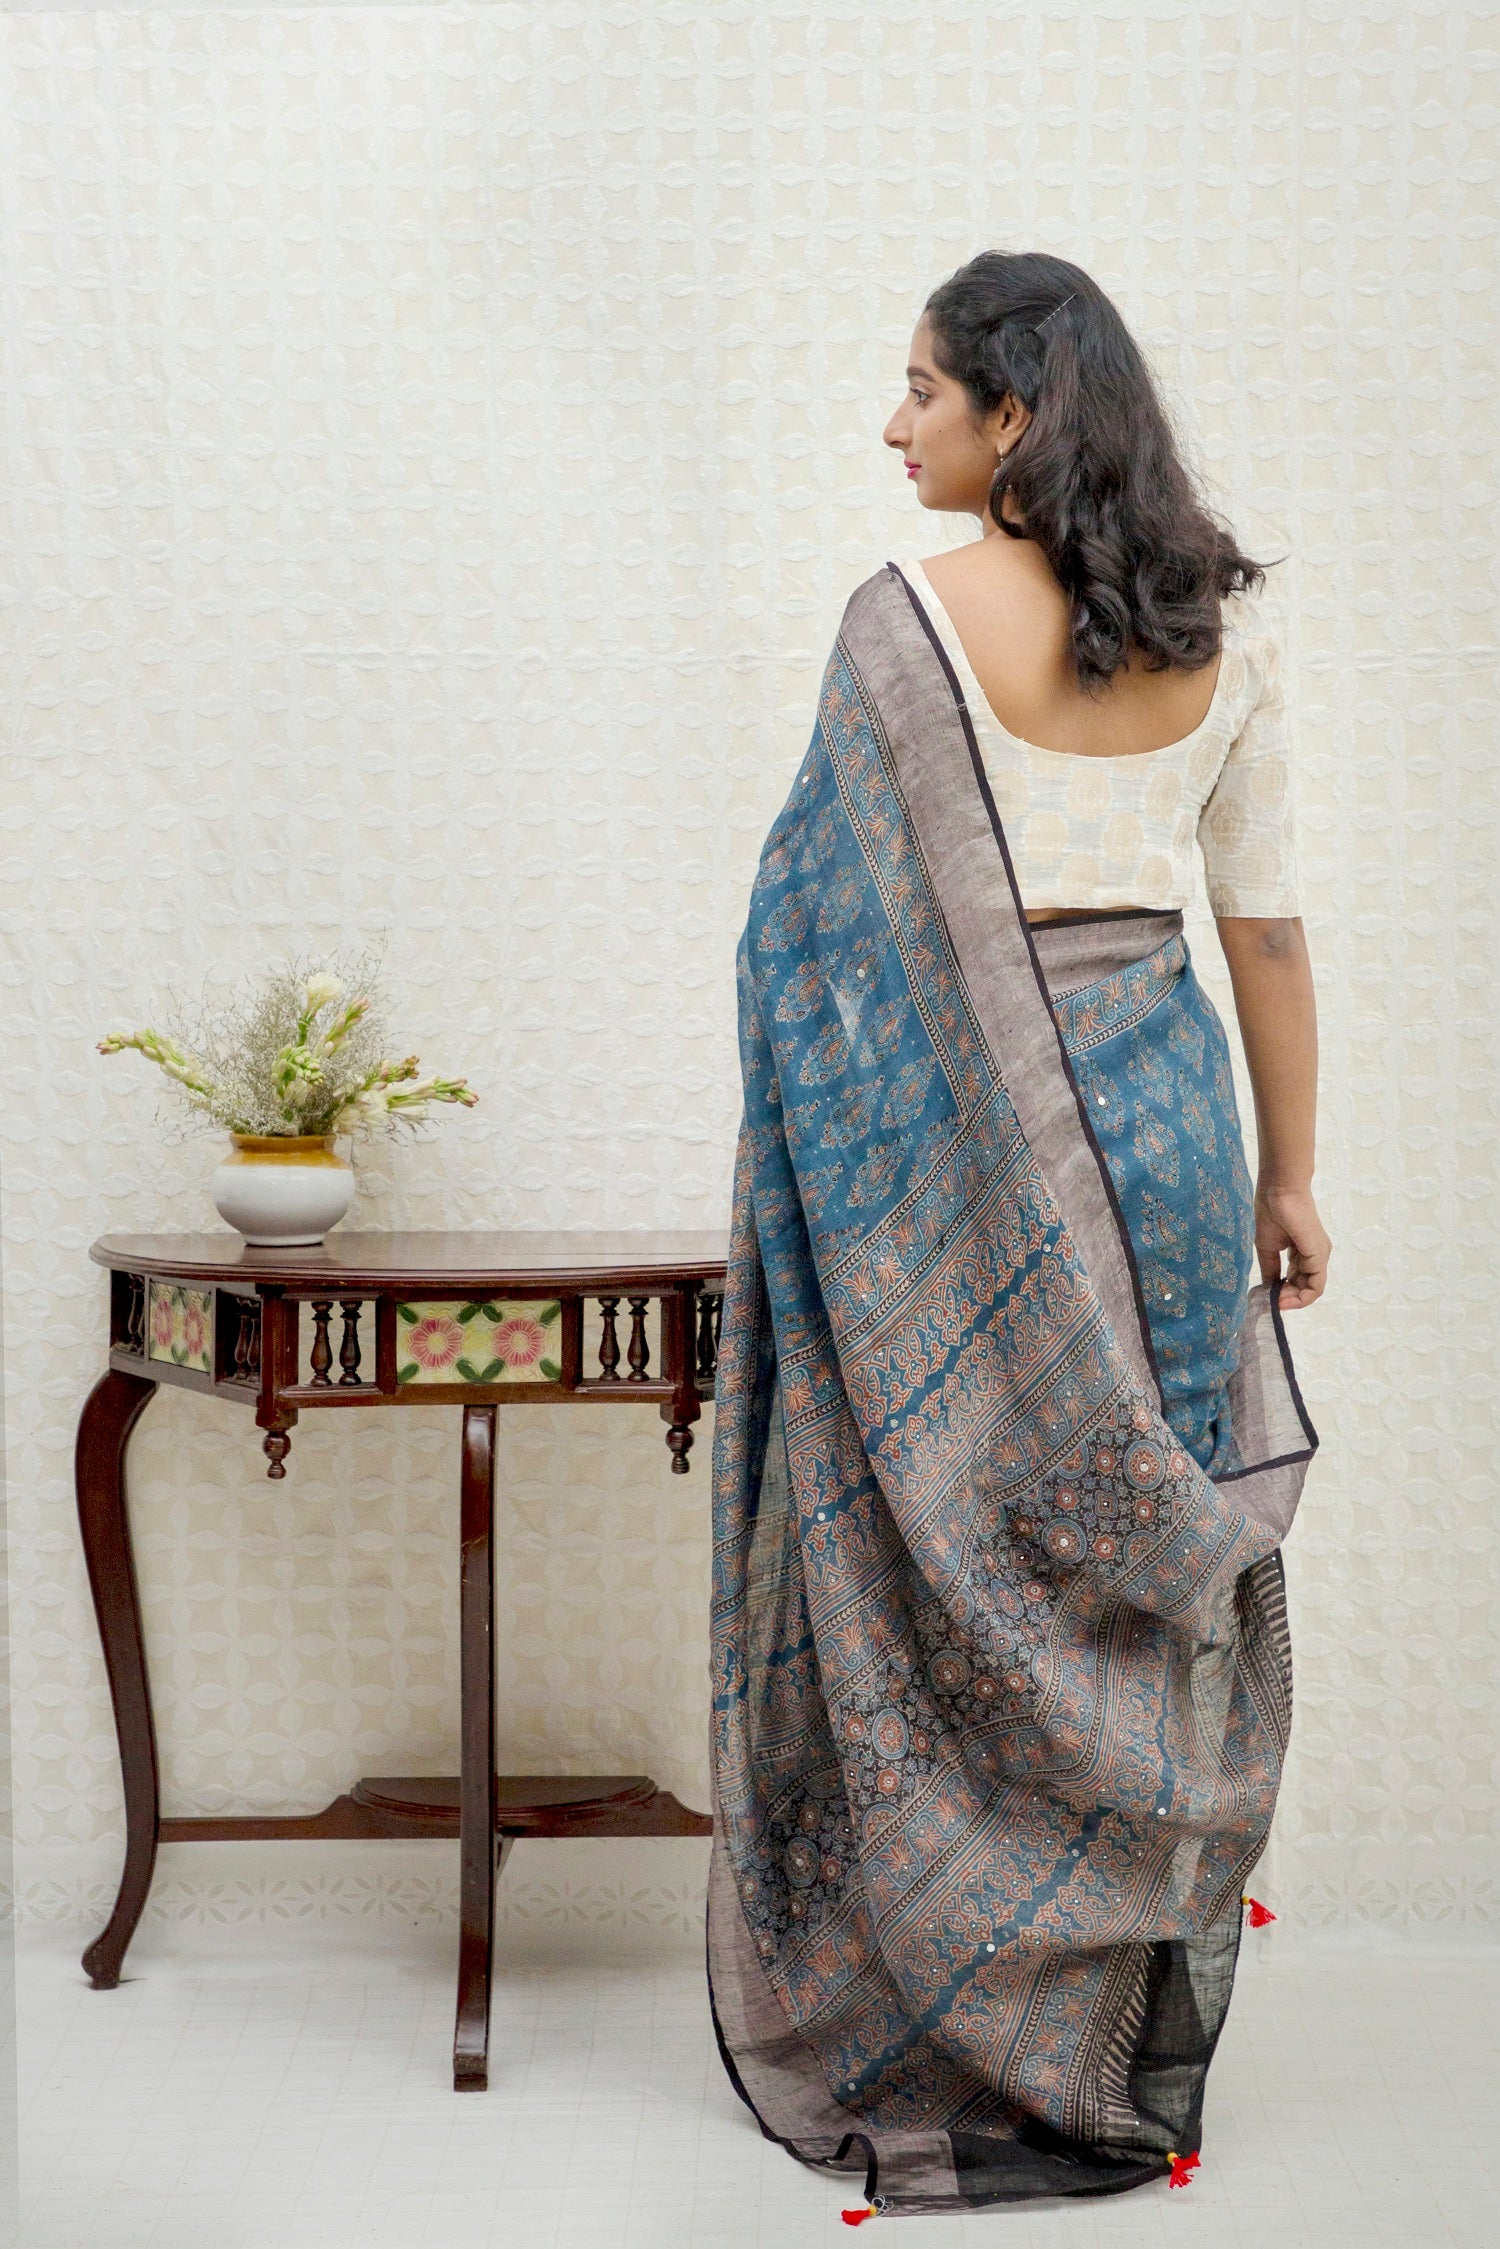 Saree Product 6 - Tina Eapen Design Studio